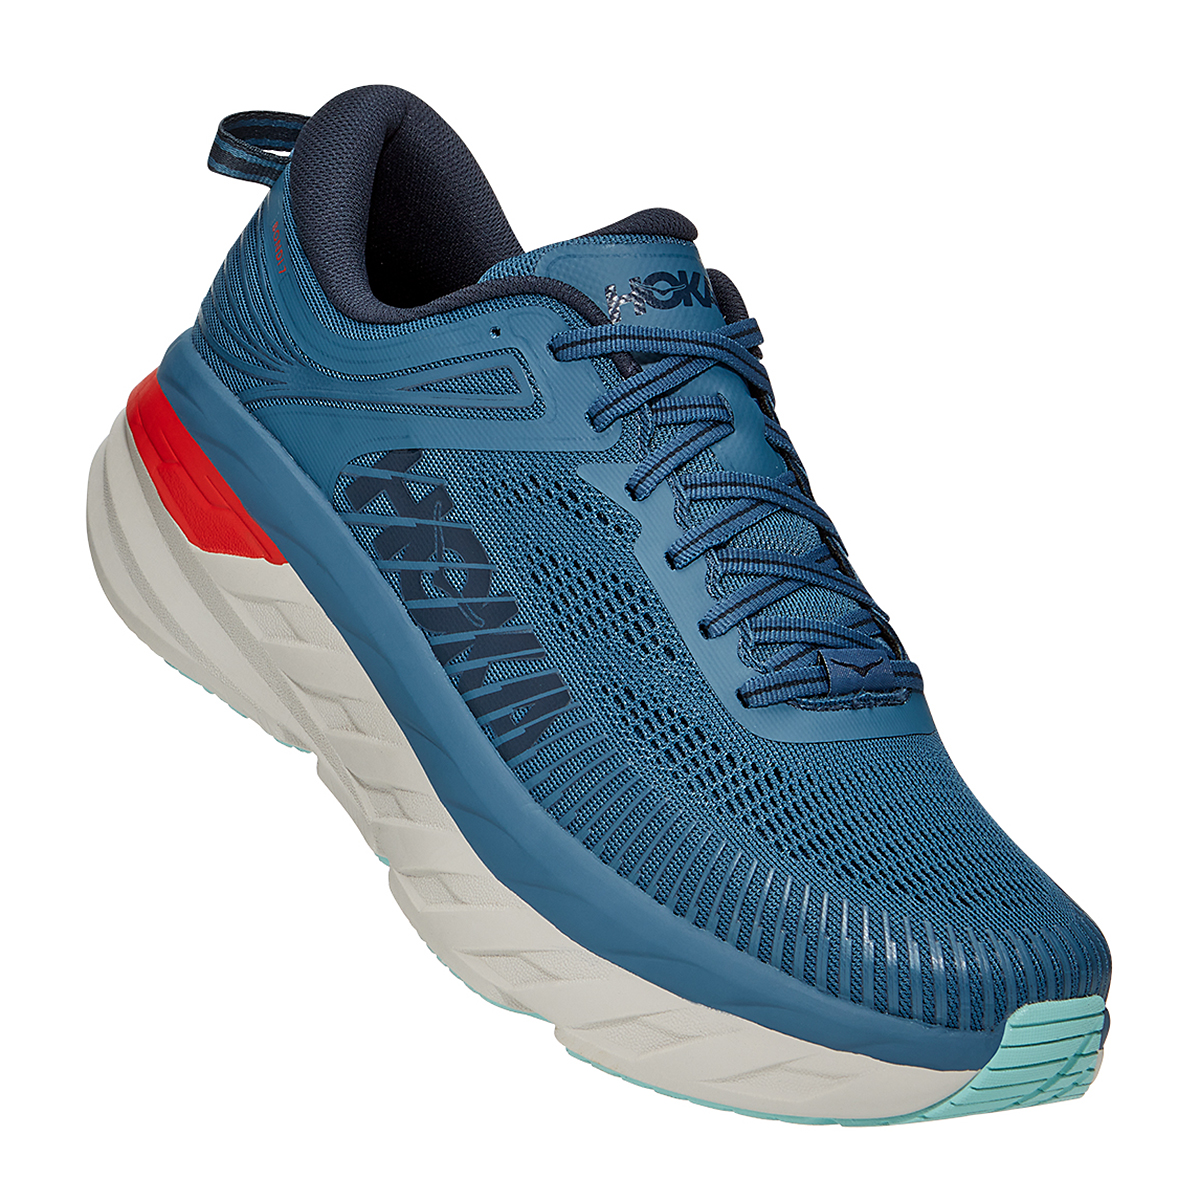 Men's Hoka One One Bondi 7 Running Shoe - Color: Real Teal/Outer Space - Size: 7 - Width: Regular, Real Teal/Outer Space, large, image 2